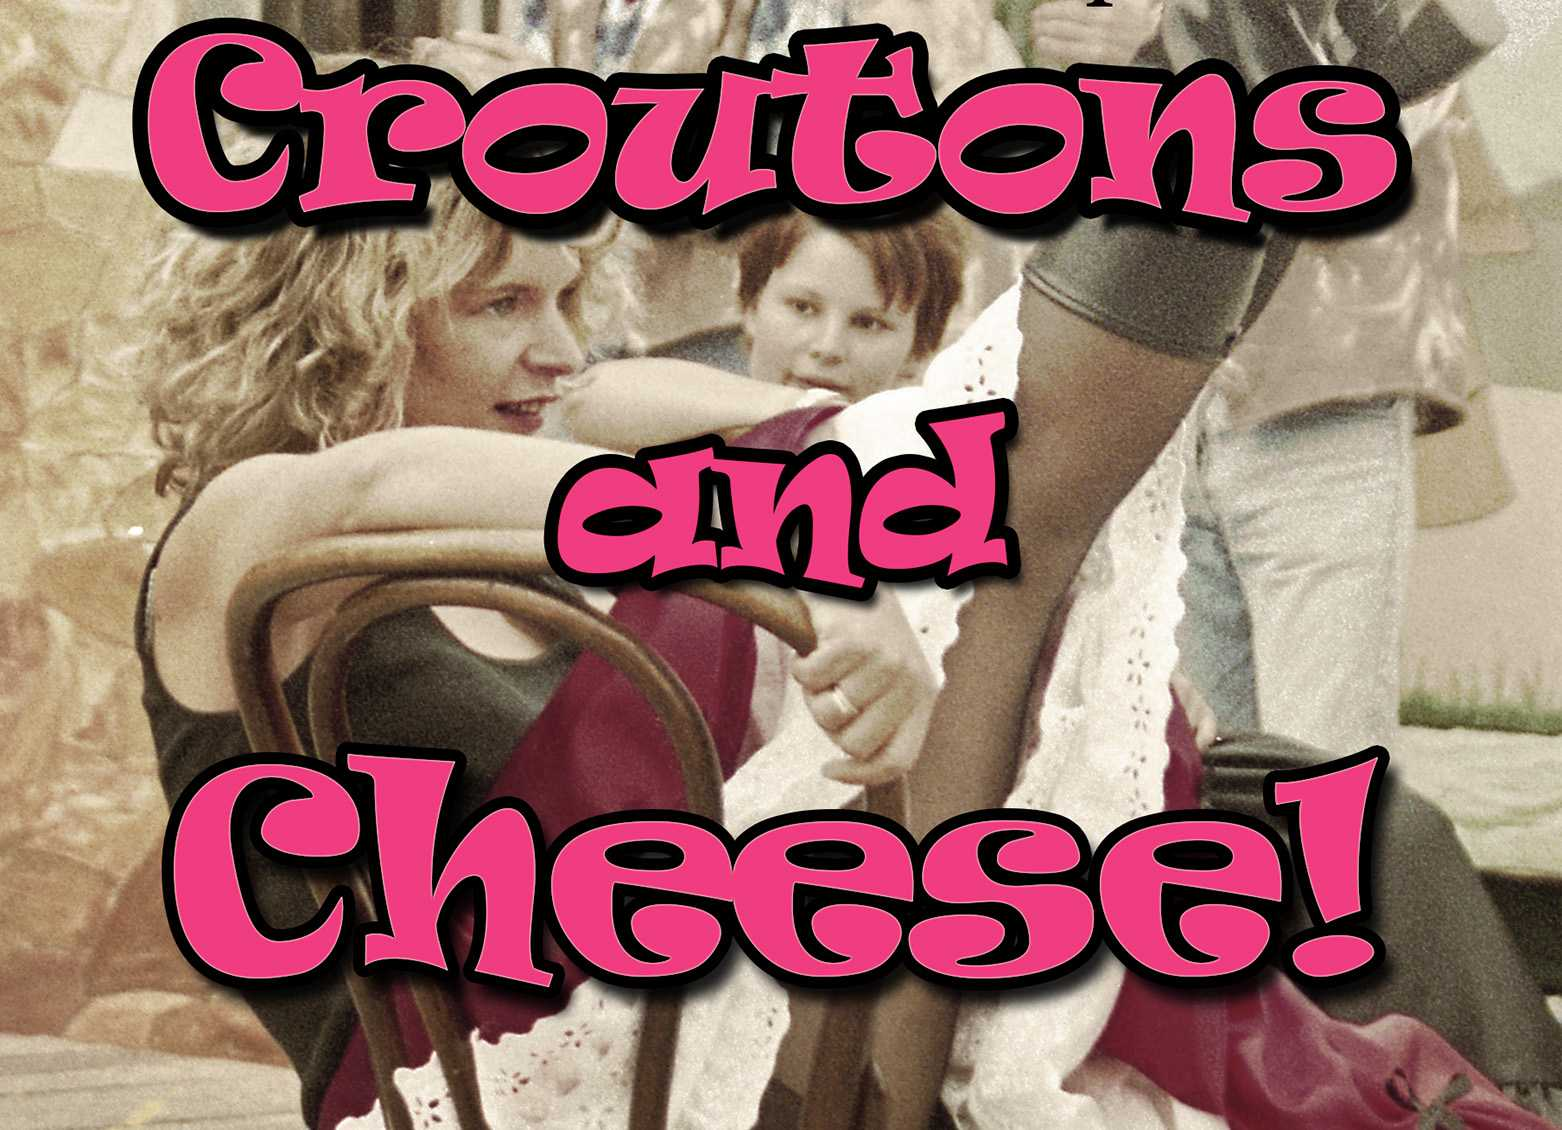 croutons-and-cheese